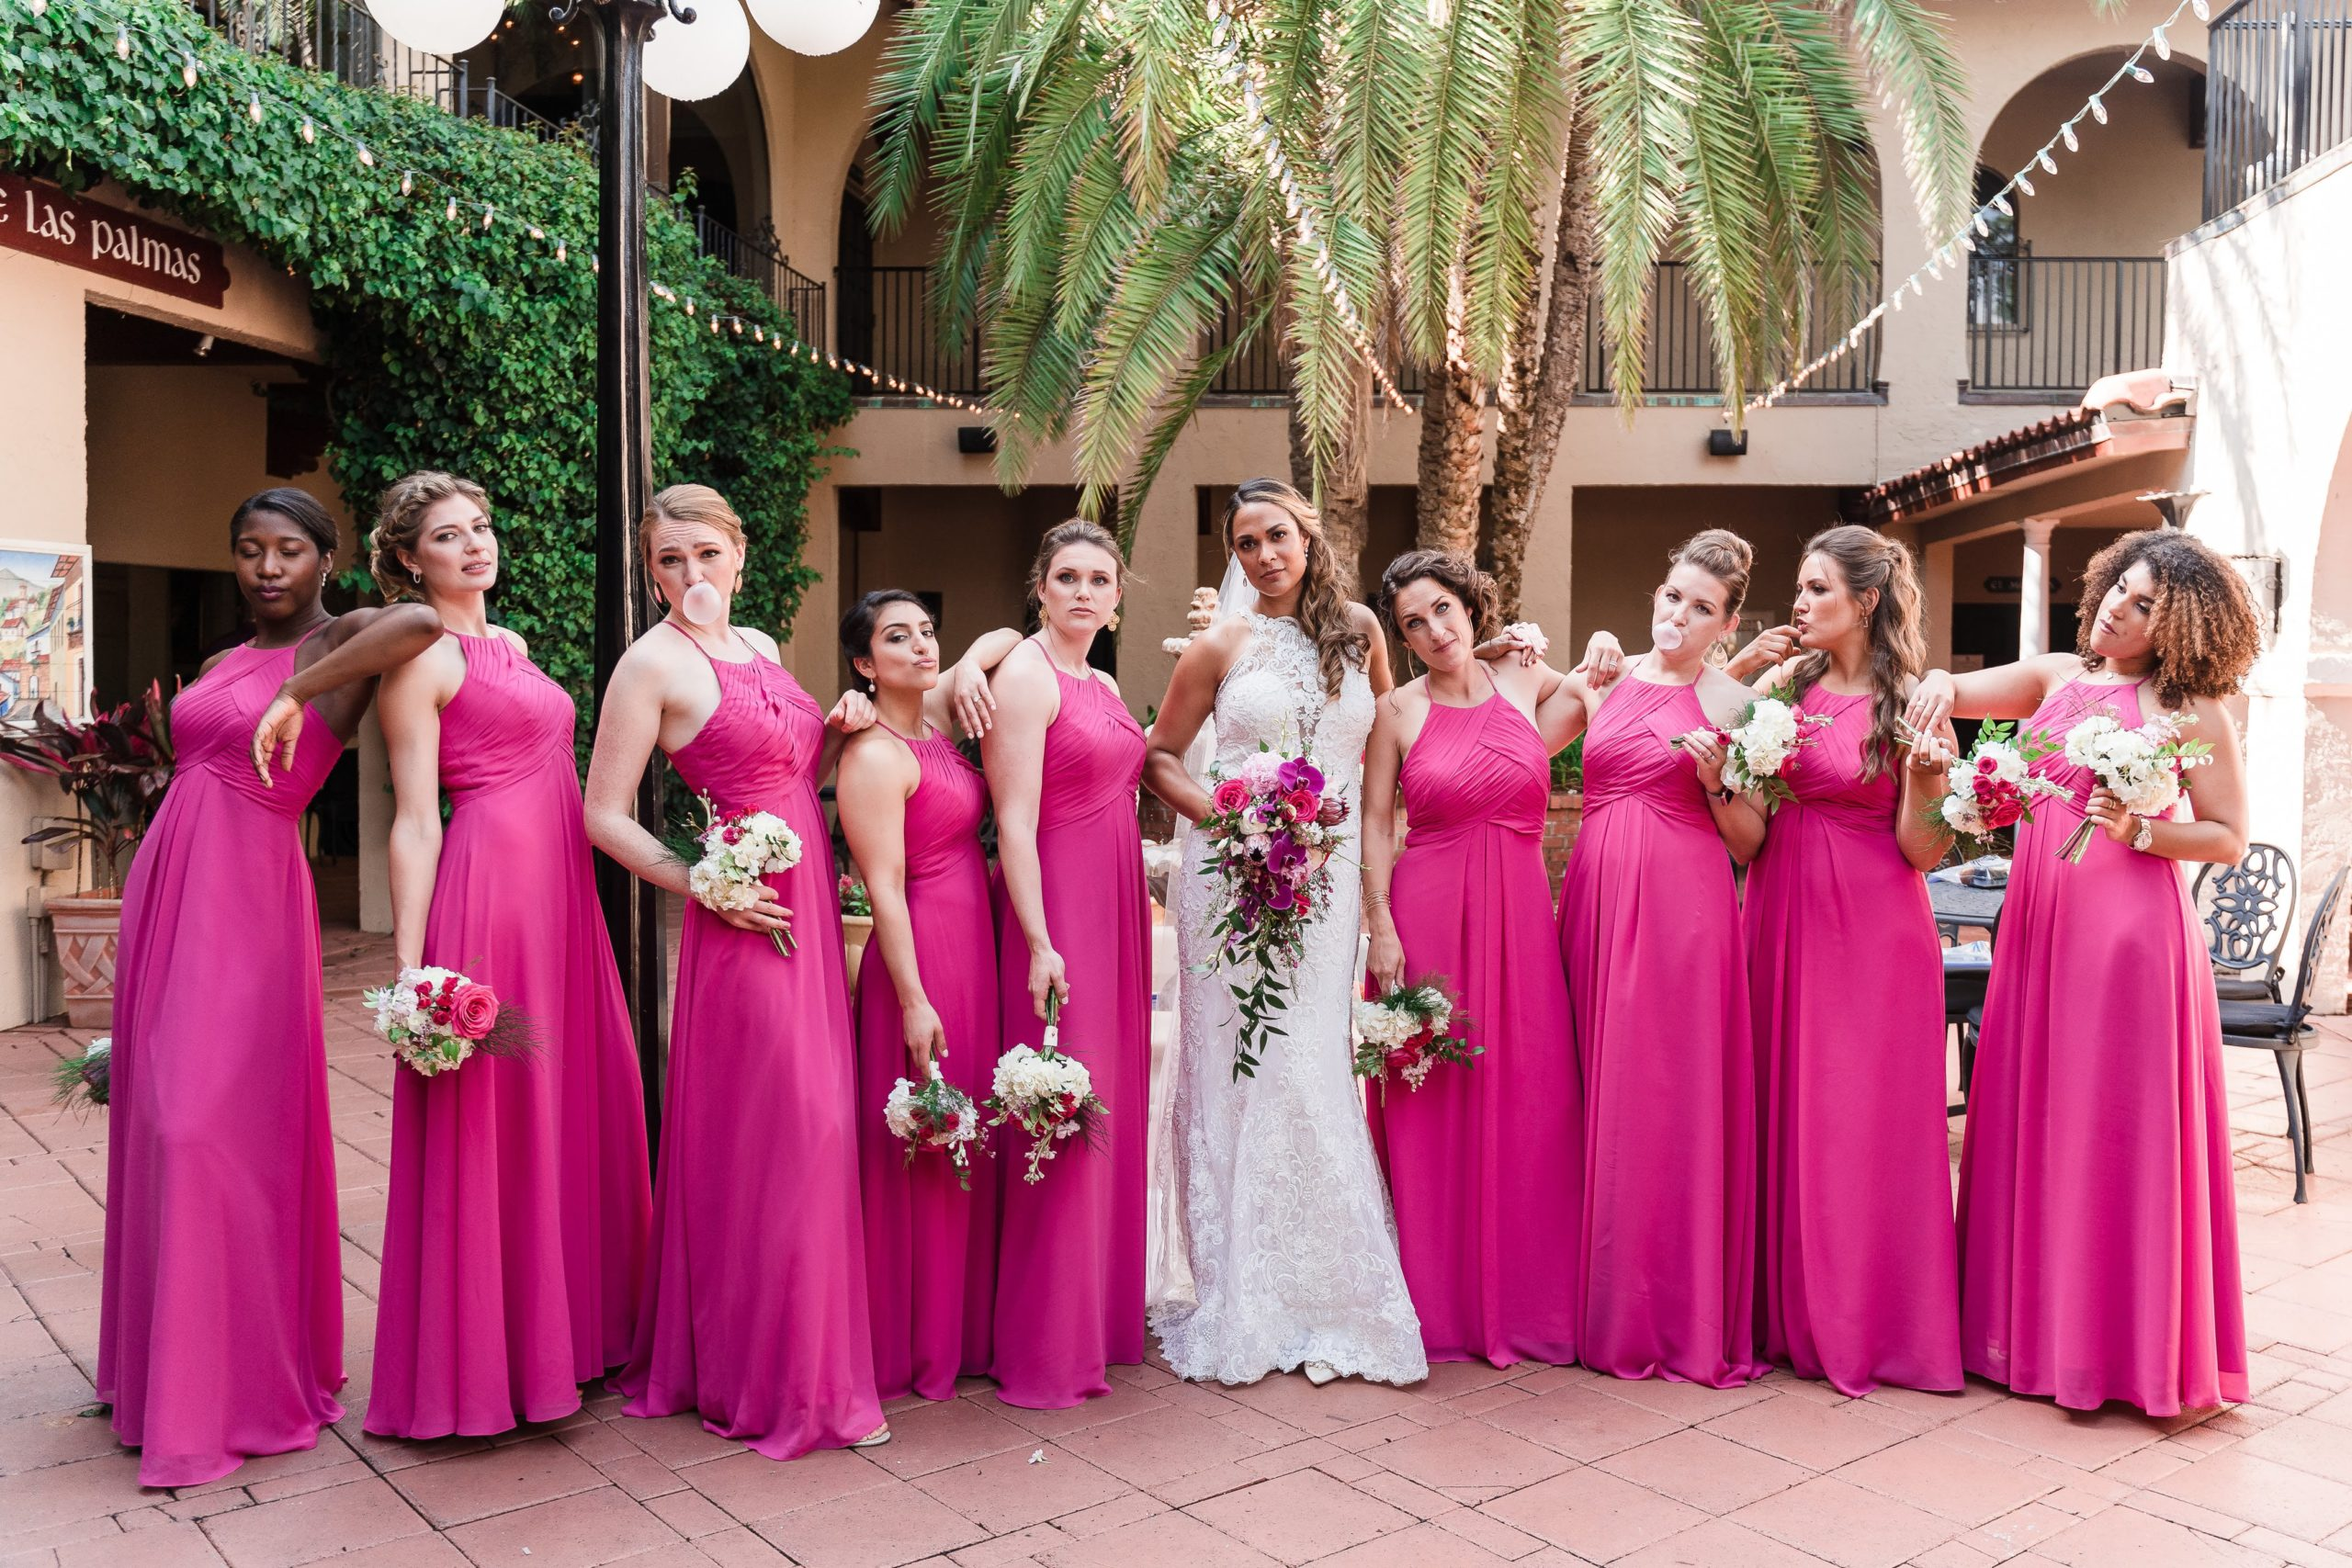 bridal party standing together in pink gowns with bride